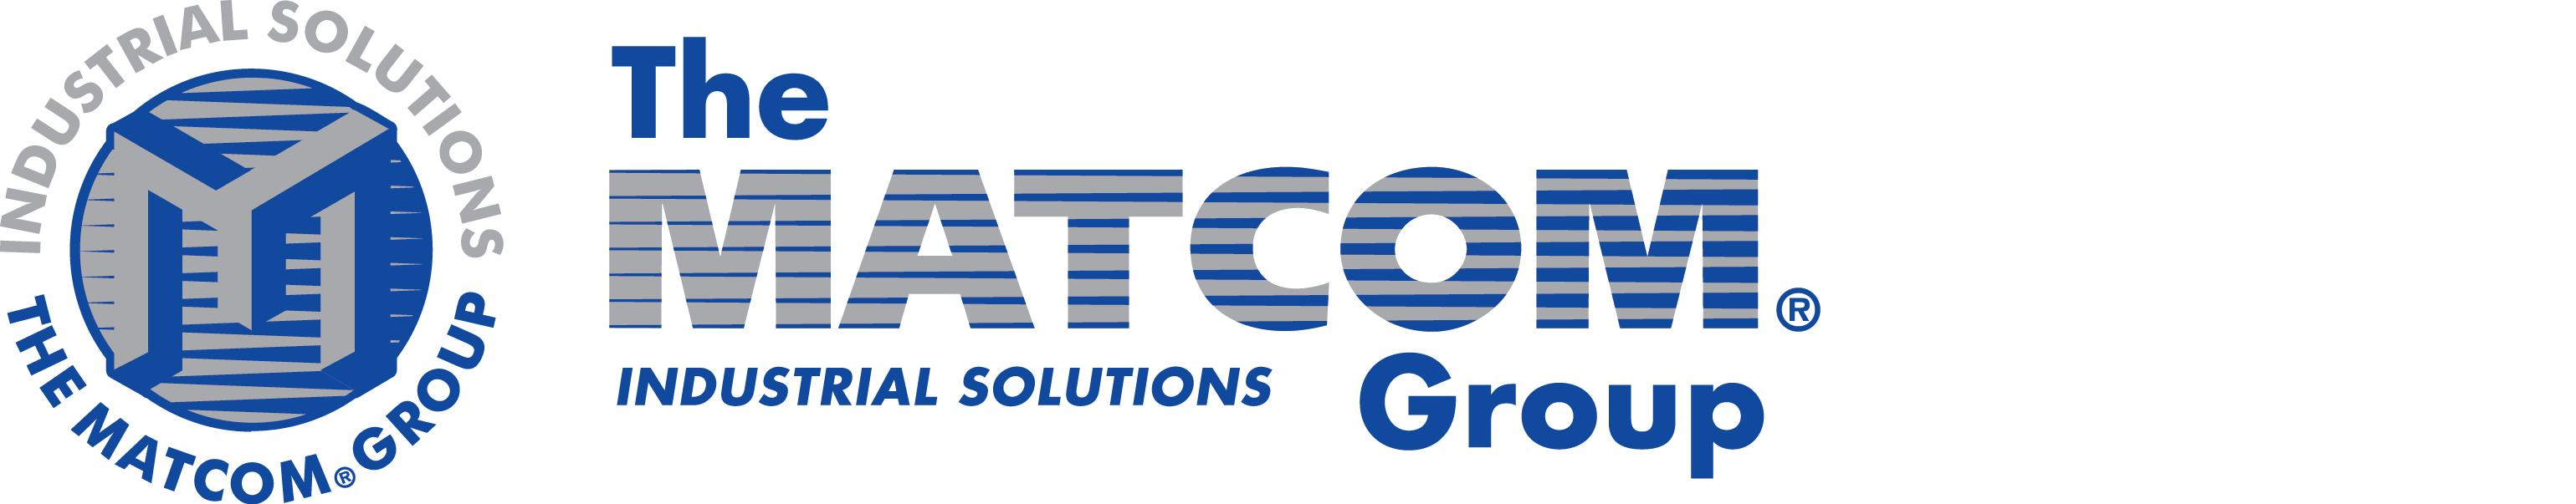 matcom_group_crest